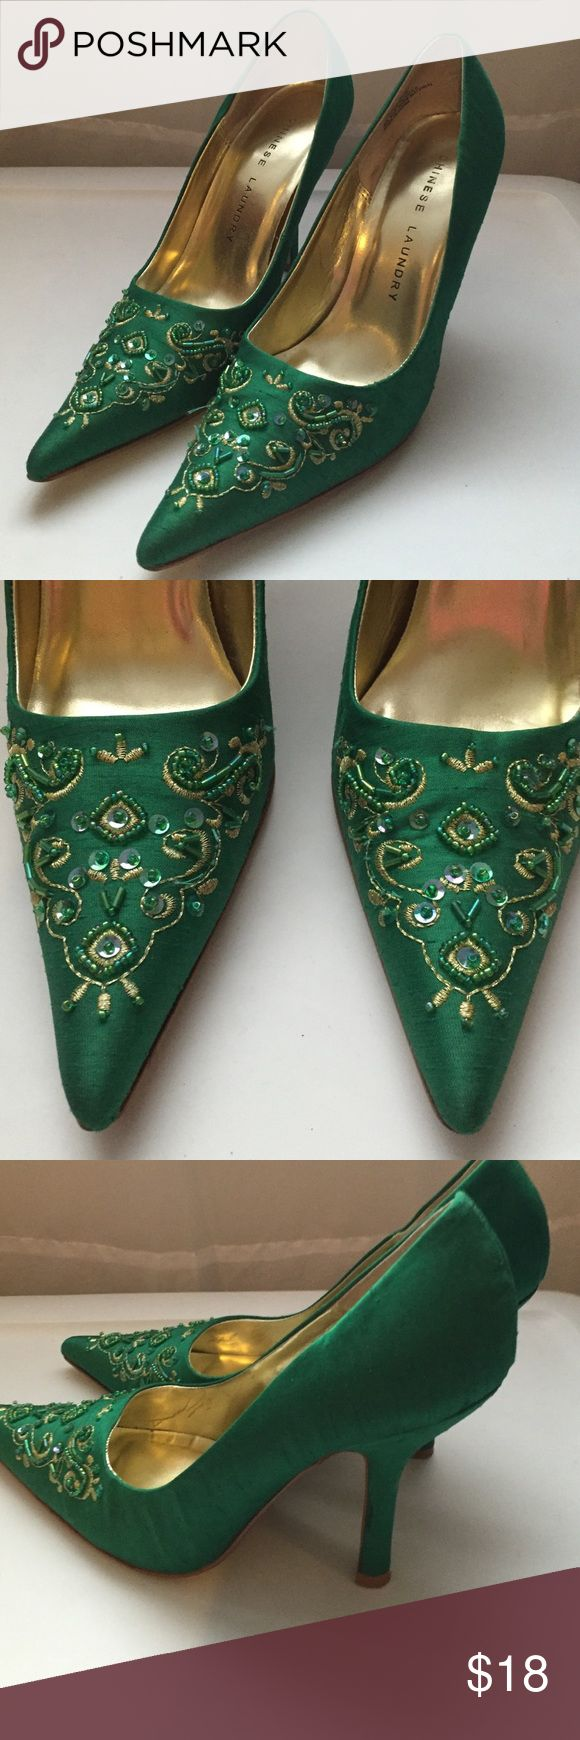 """Unique Chinese Laundry heels Much-loved shoes-- possibly my favorites. These are emerald-green fabric heels with beaded detail and embroidery. They're absolutely gorgeous, but I can no longer wear heels  Please see wear to soles; other than that, they're in excellent condition. 3.5"""" heels. I would love for someone to give these a new home; reasonable offers welcome! Chinese Laundry Shoes Heels"""